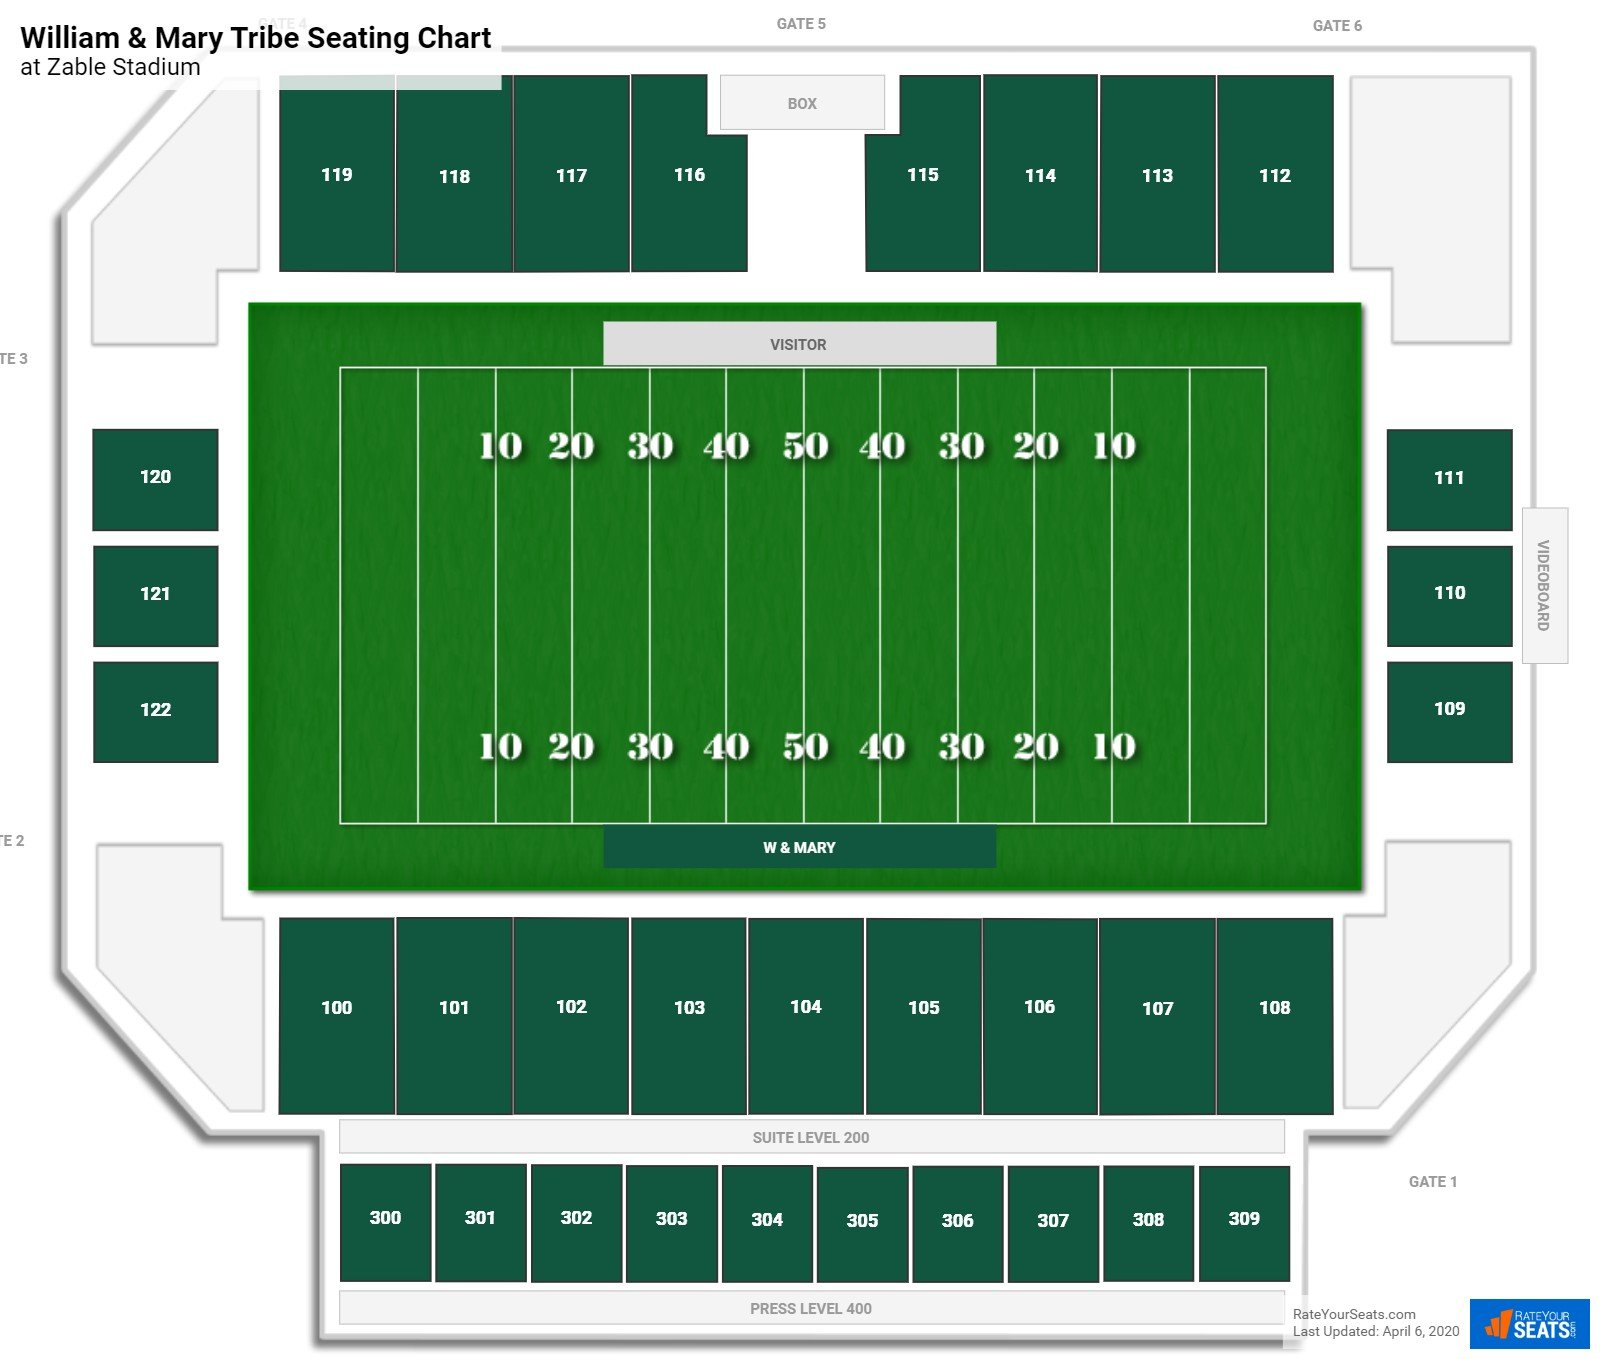 William & Mary Football Seating Chart